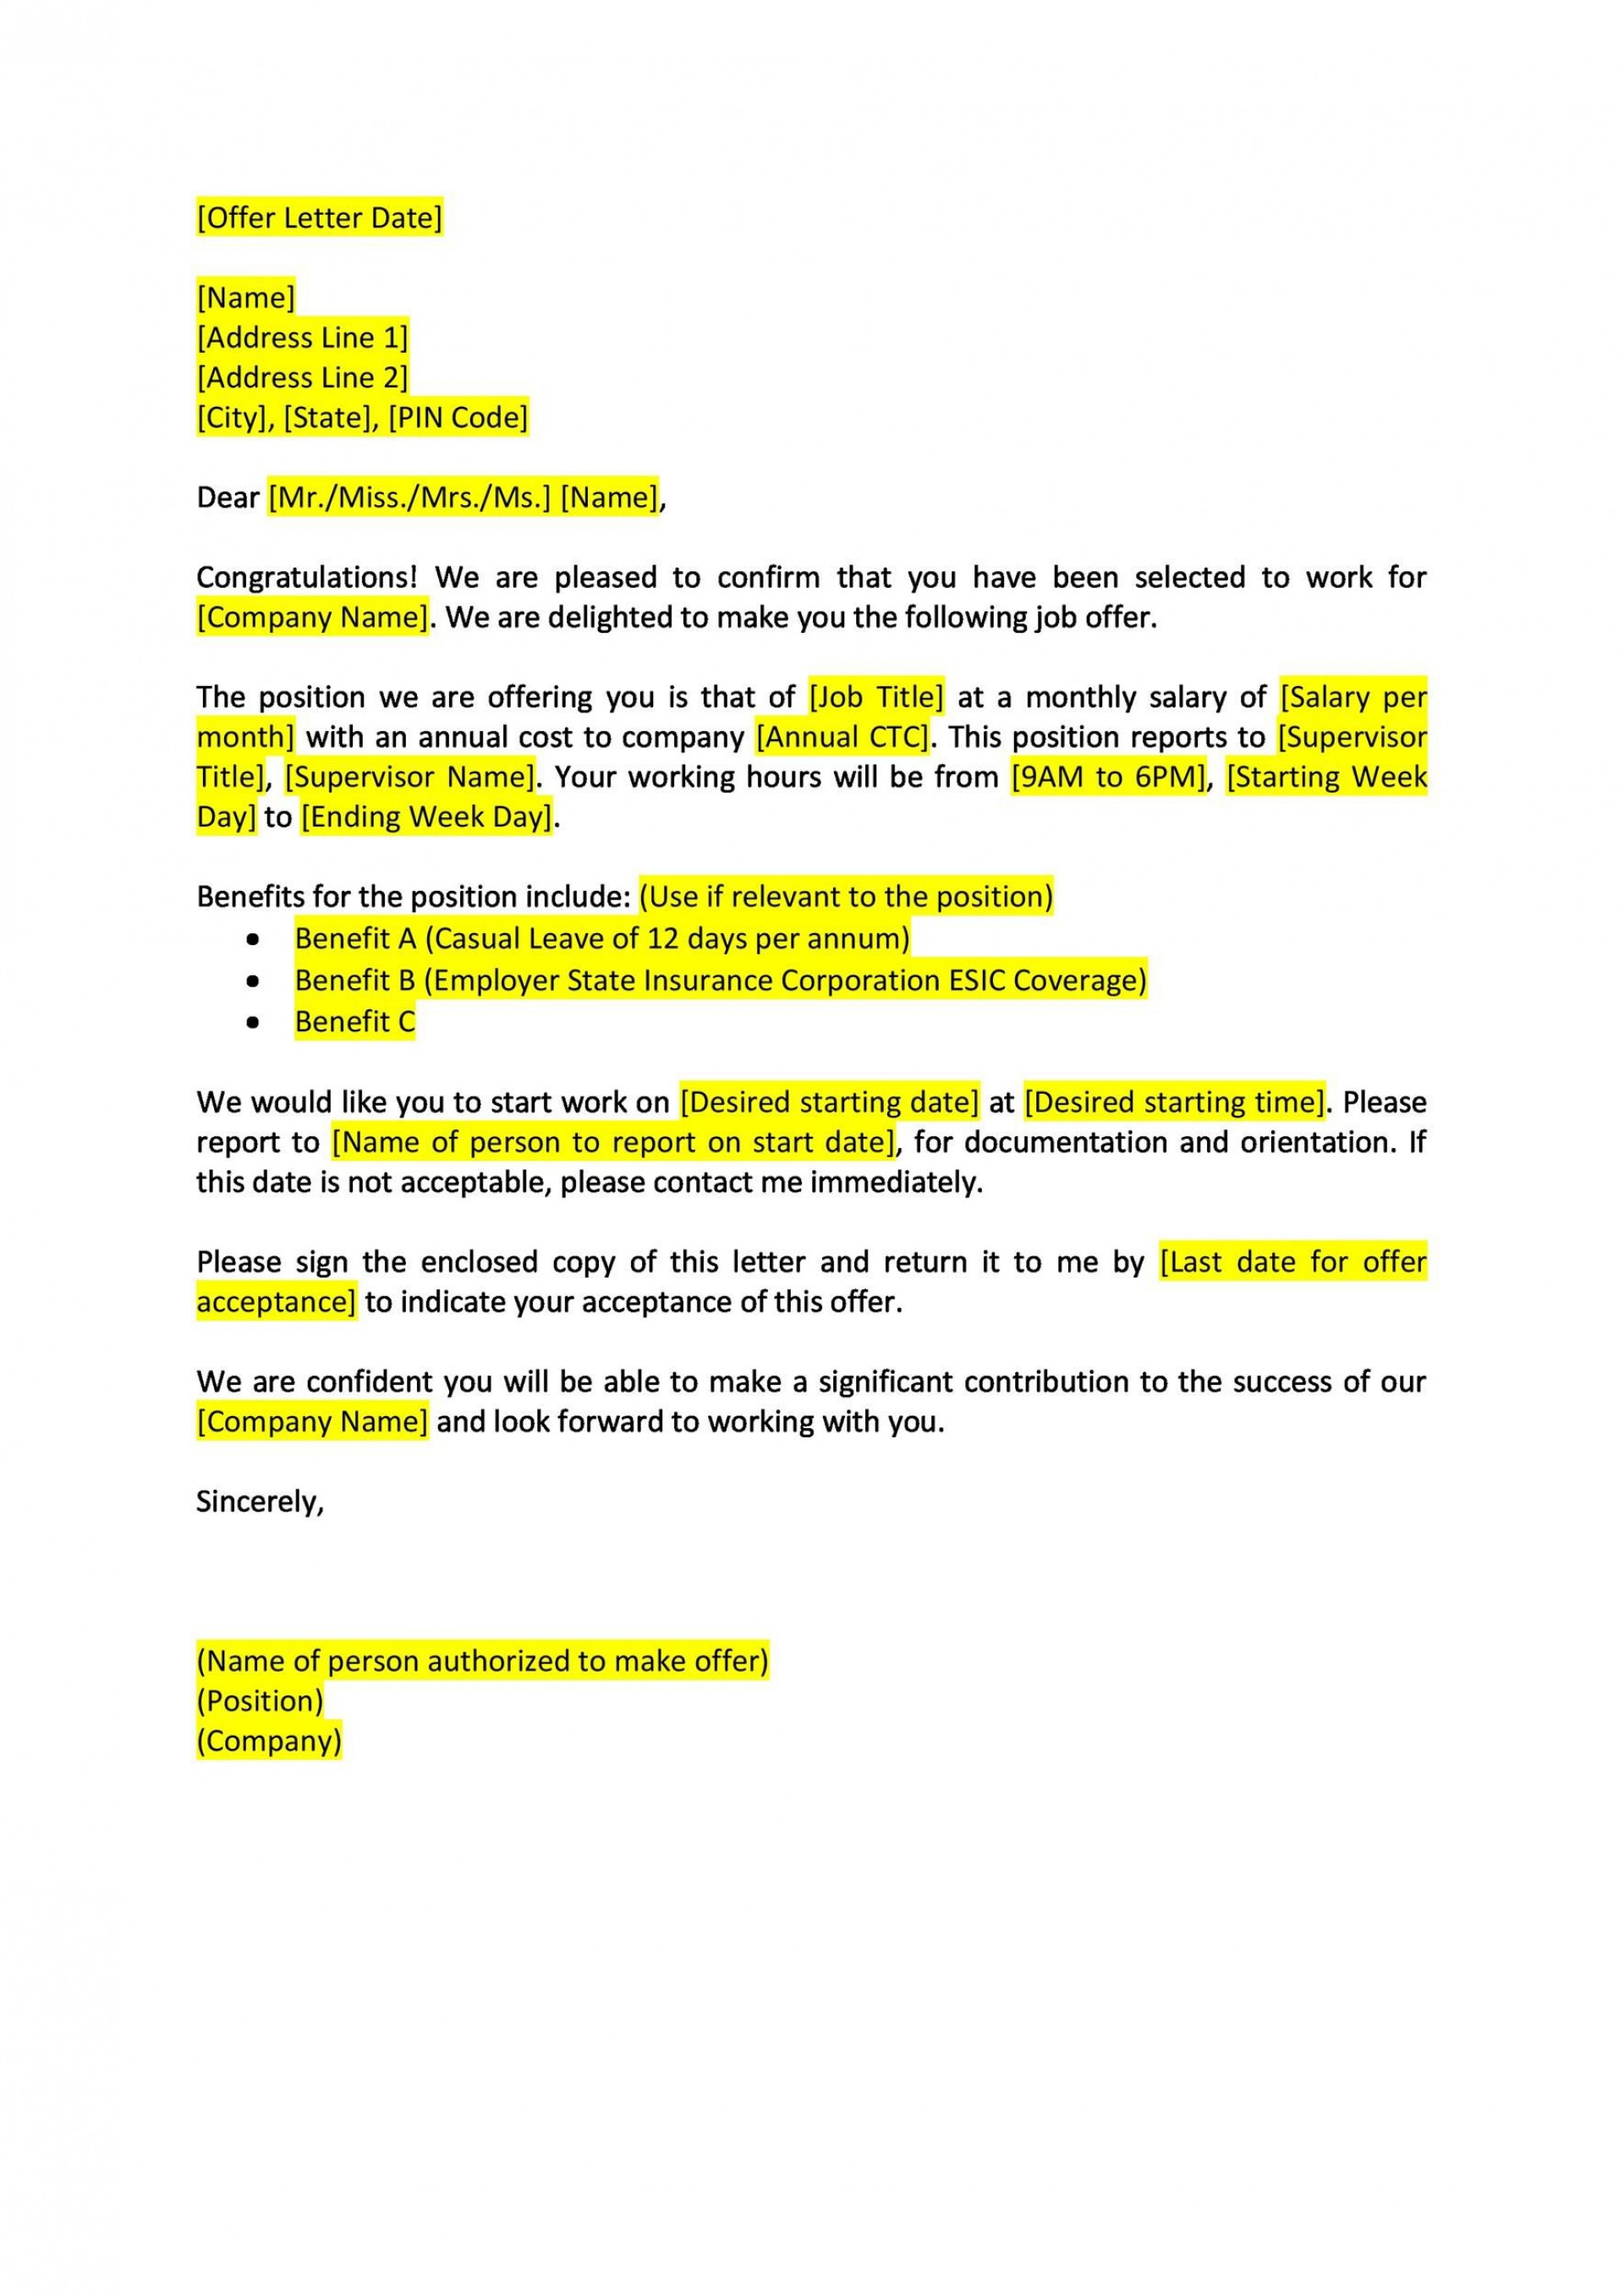 Job Acceptance Letter From Employer from www.addictionary.org